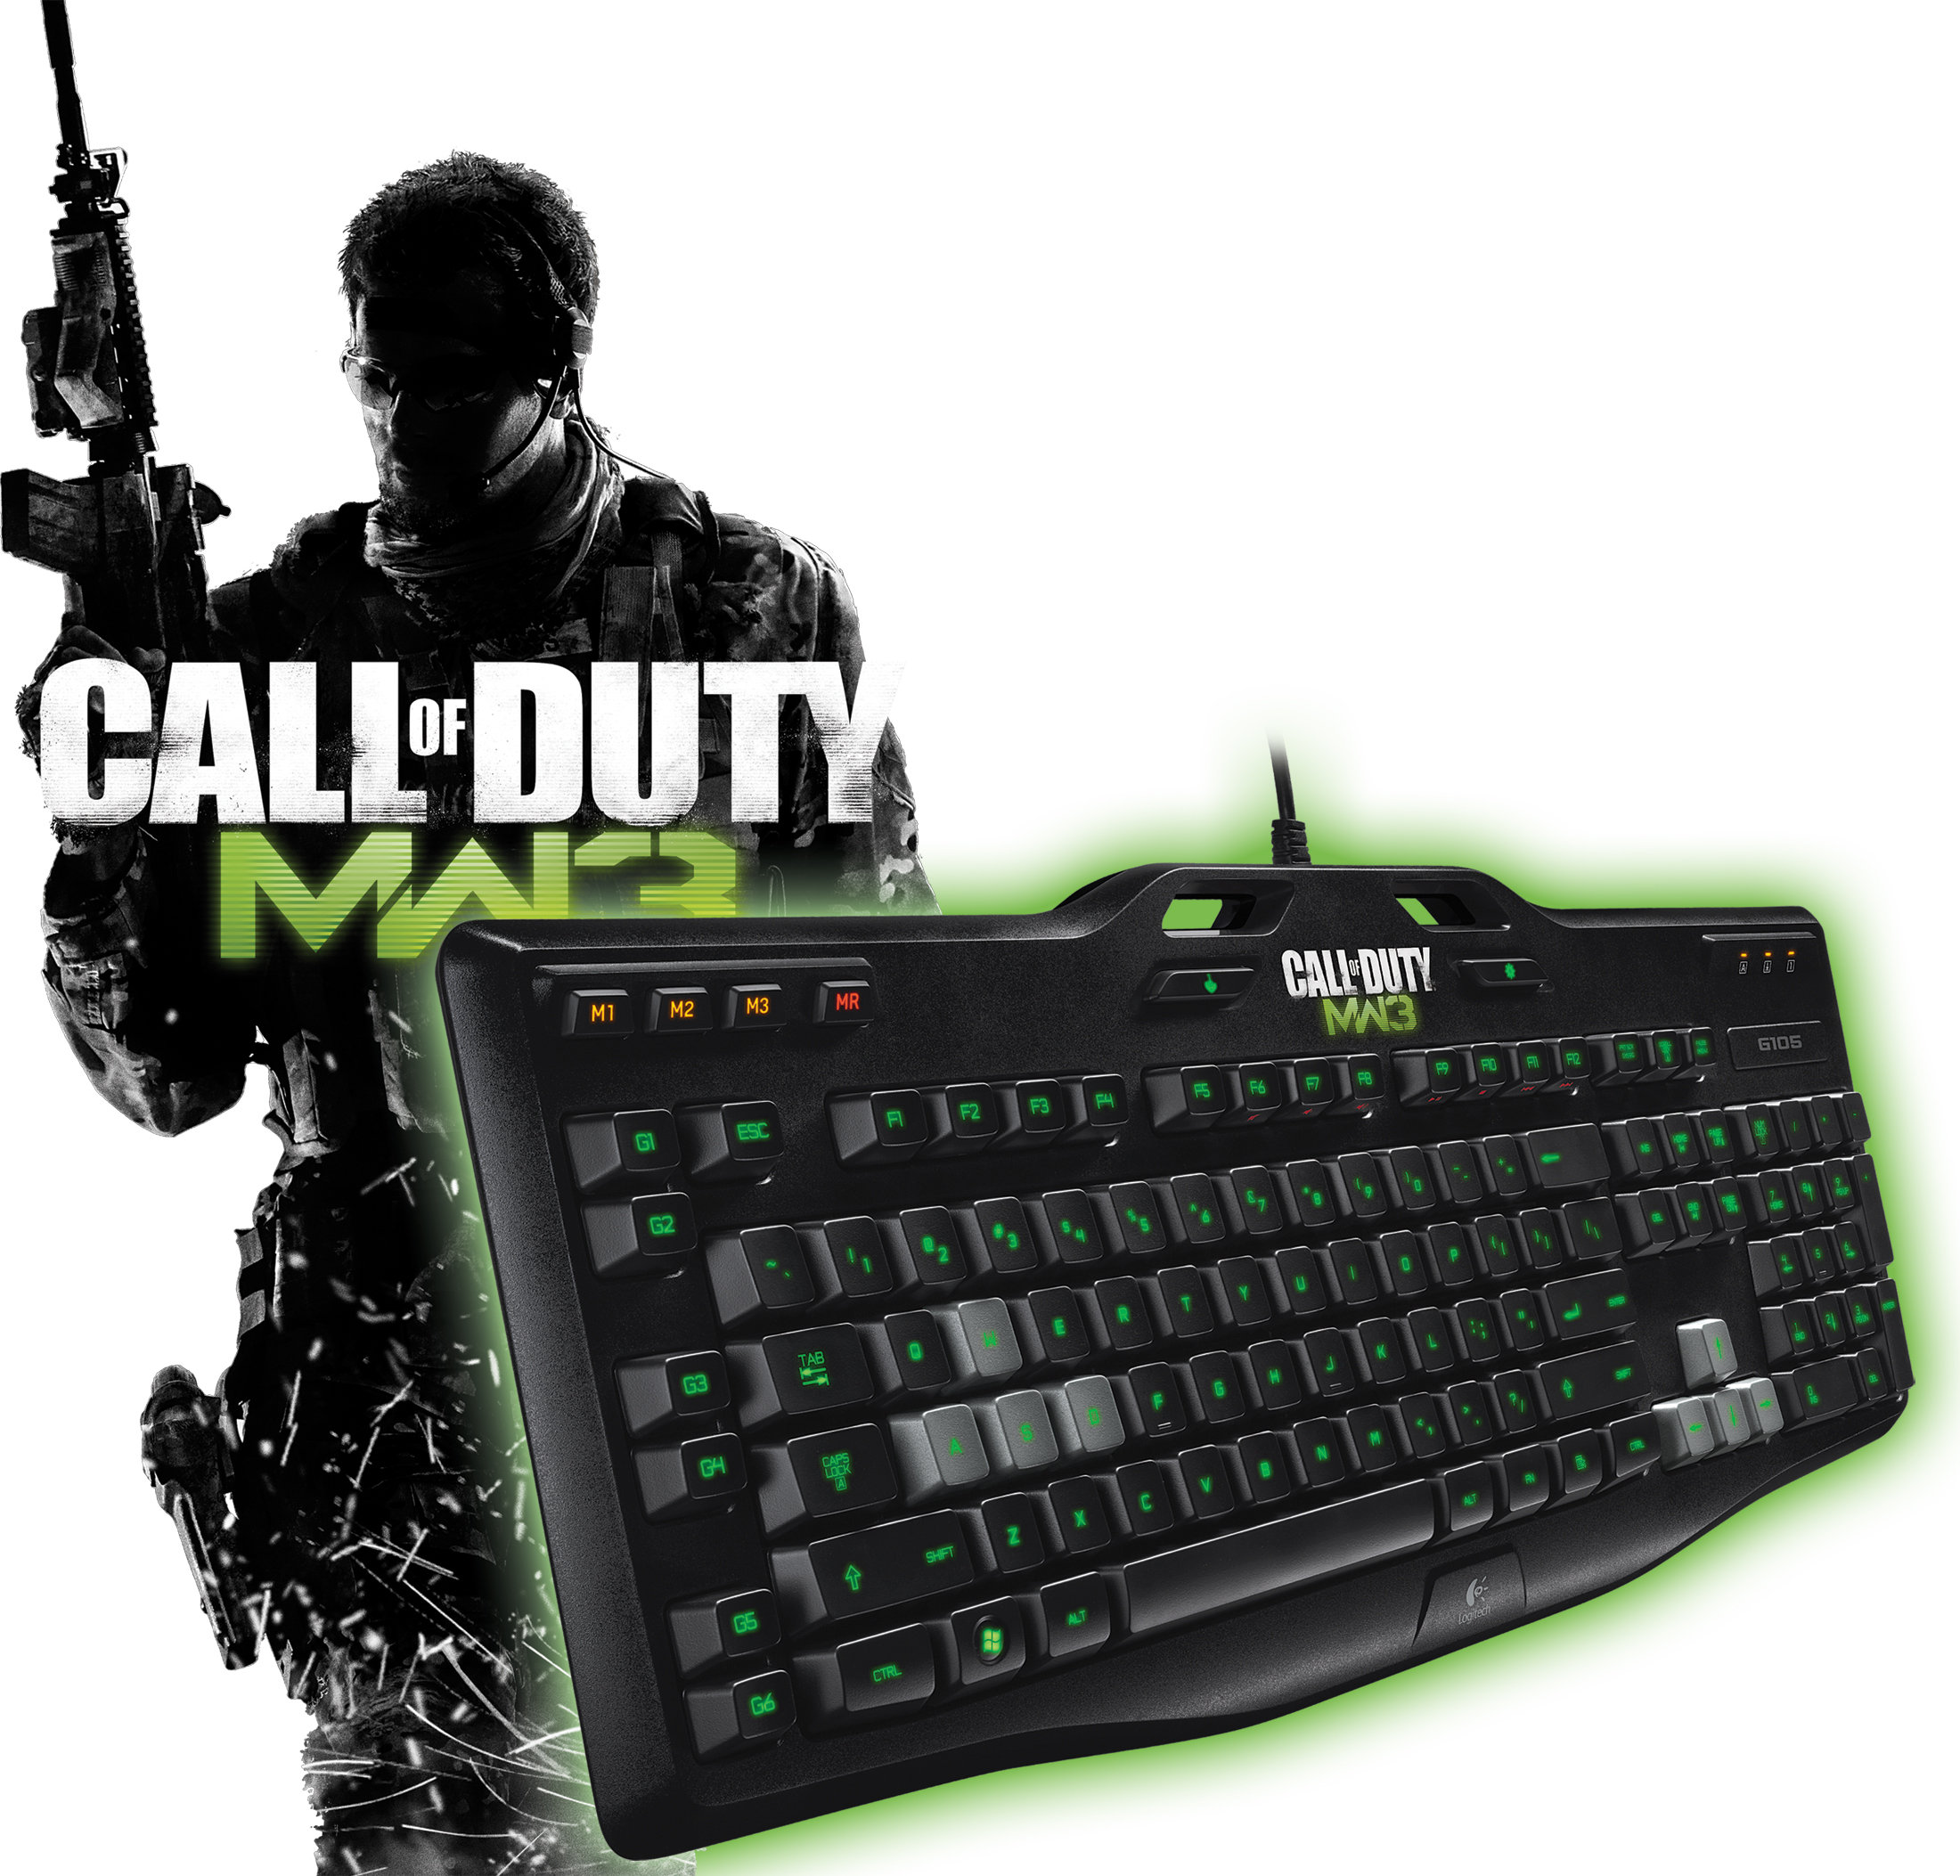 logitech g105 call of duty gaming keyboard computers accessories. Black Bedroom Furniture Sets. Home Design Ideas